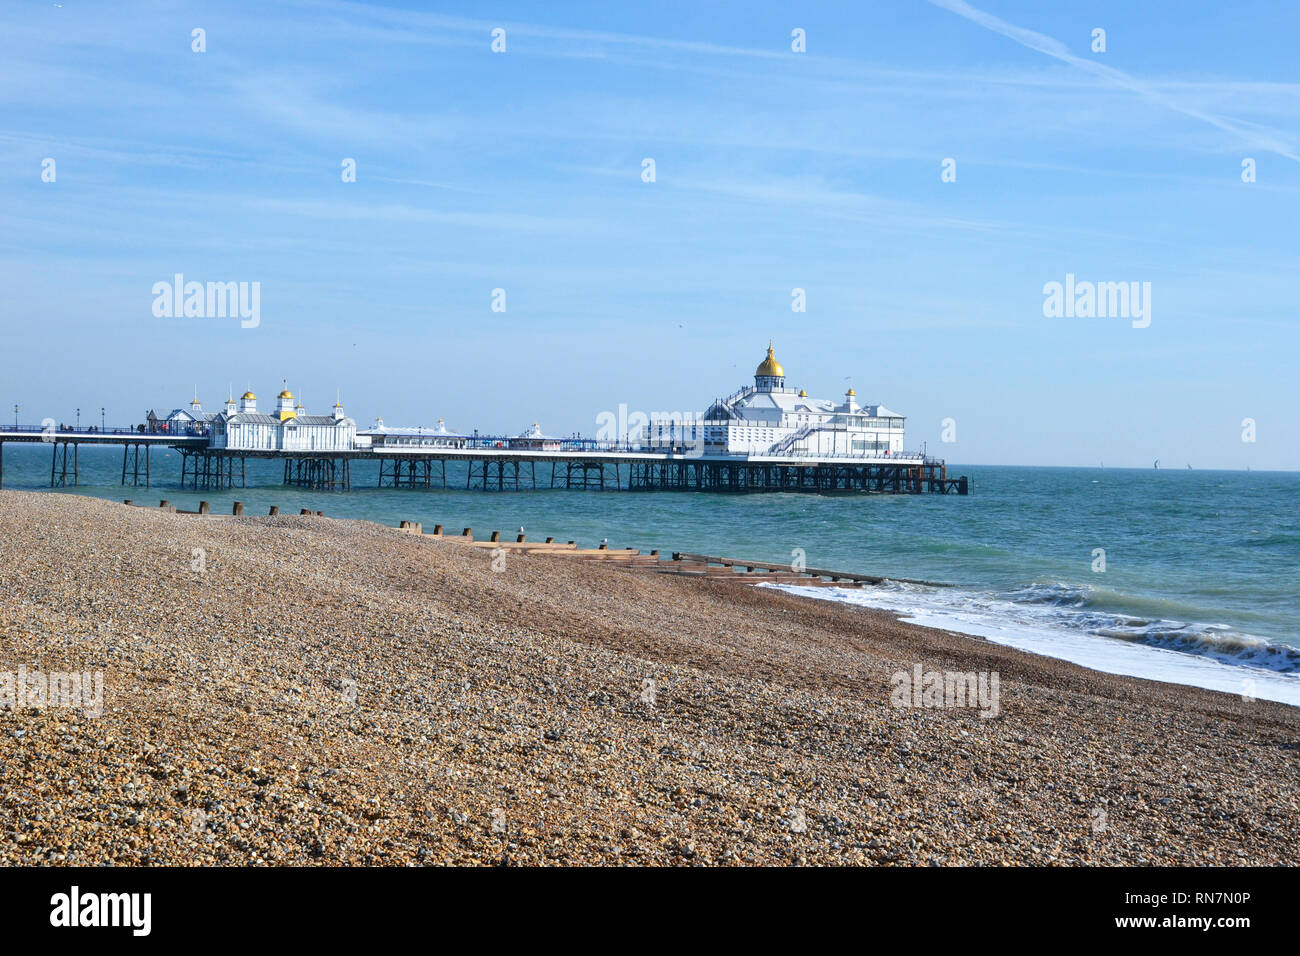 View of Eastbourne Pier, Beach and Seafront from the Promenade, England, UK Stock Photo